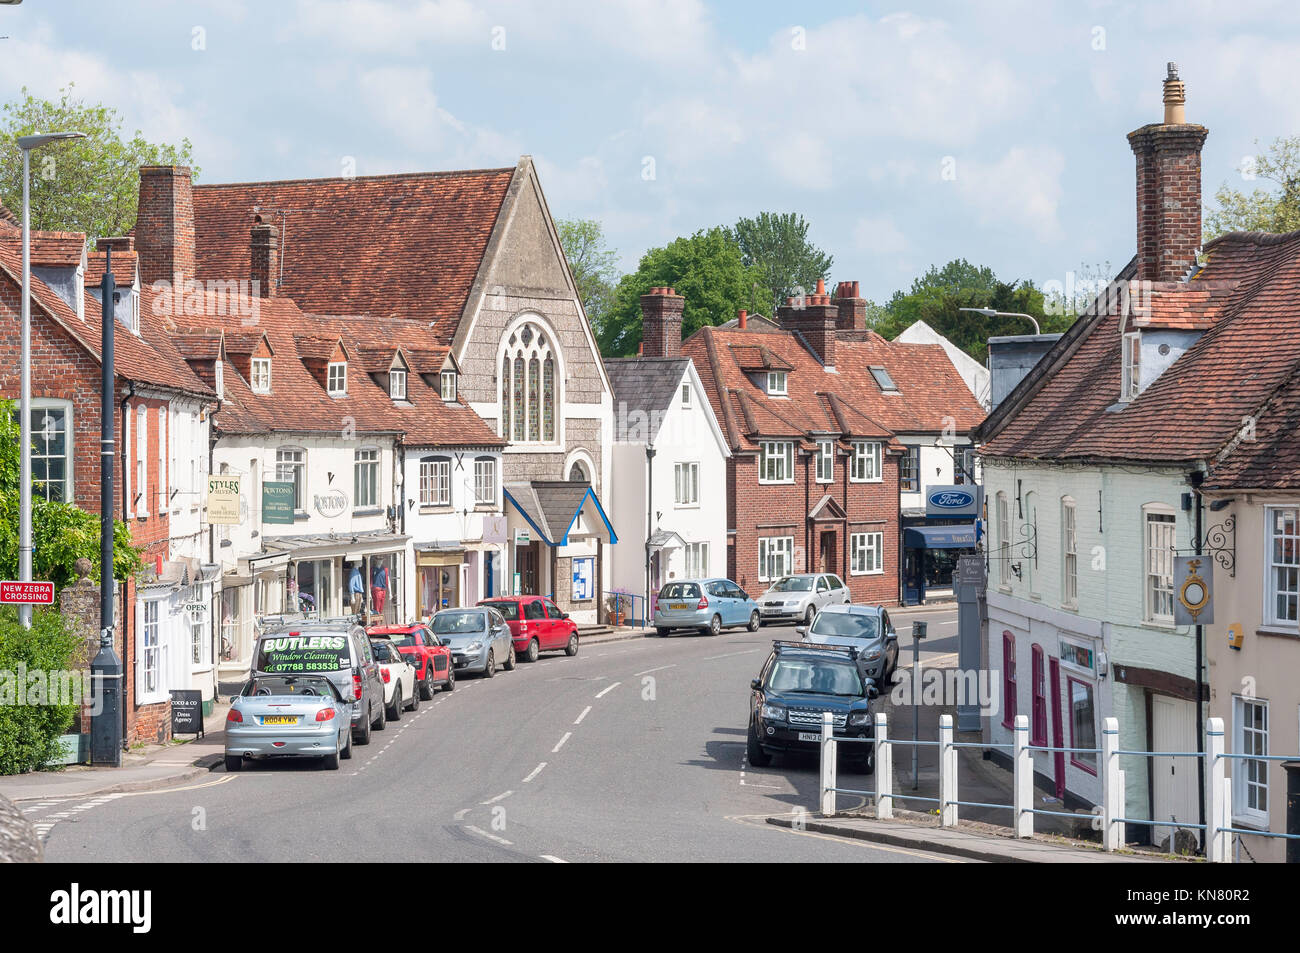 Bridge Street, Hungerford, Berkshire, England, United Kingdom - Stock Image